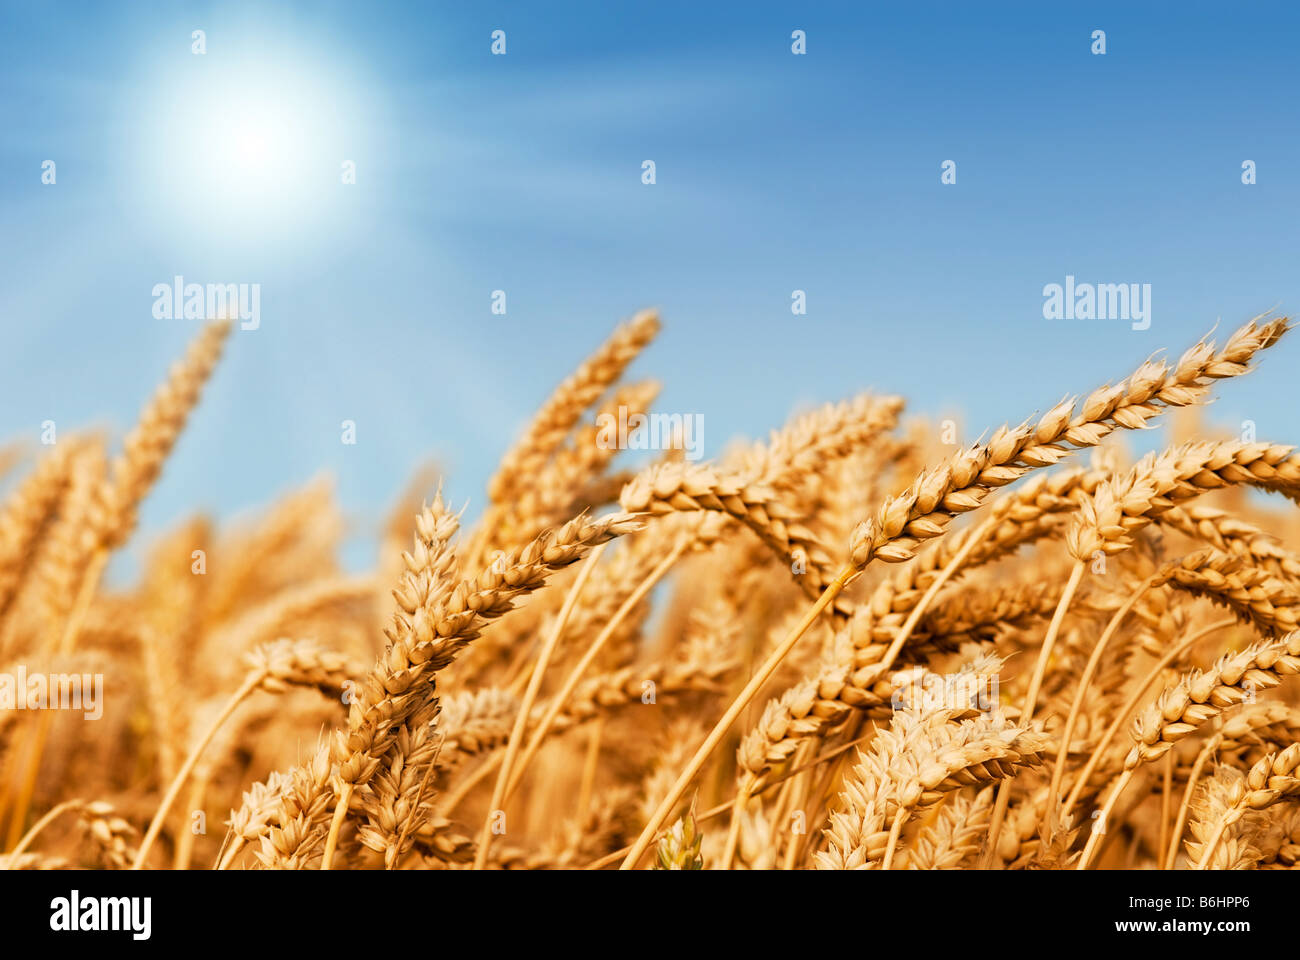 Golden wheat field under a blue sky and sunshine Stock Photo